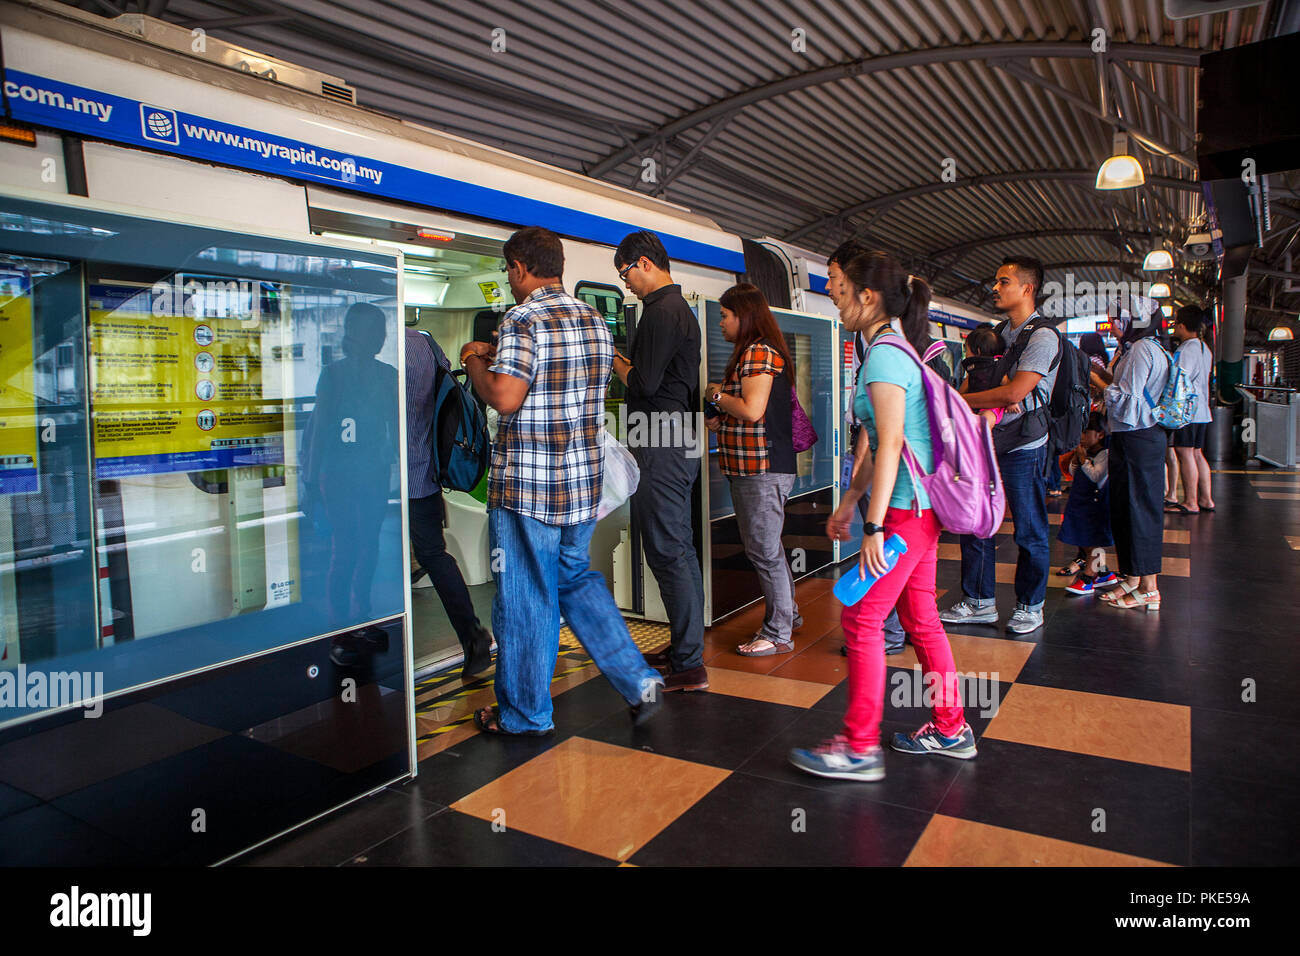 Passengers board one of the KL Rapid Transit monorail trains in Kuala Lumpur, Malaysia. - Stock Image